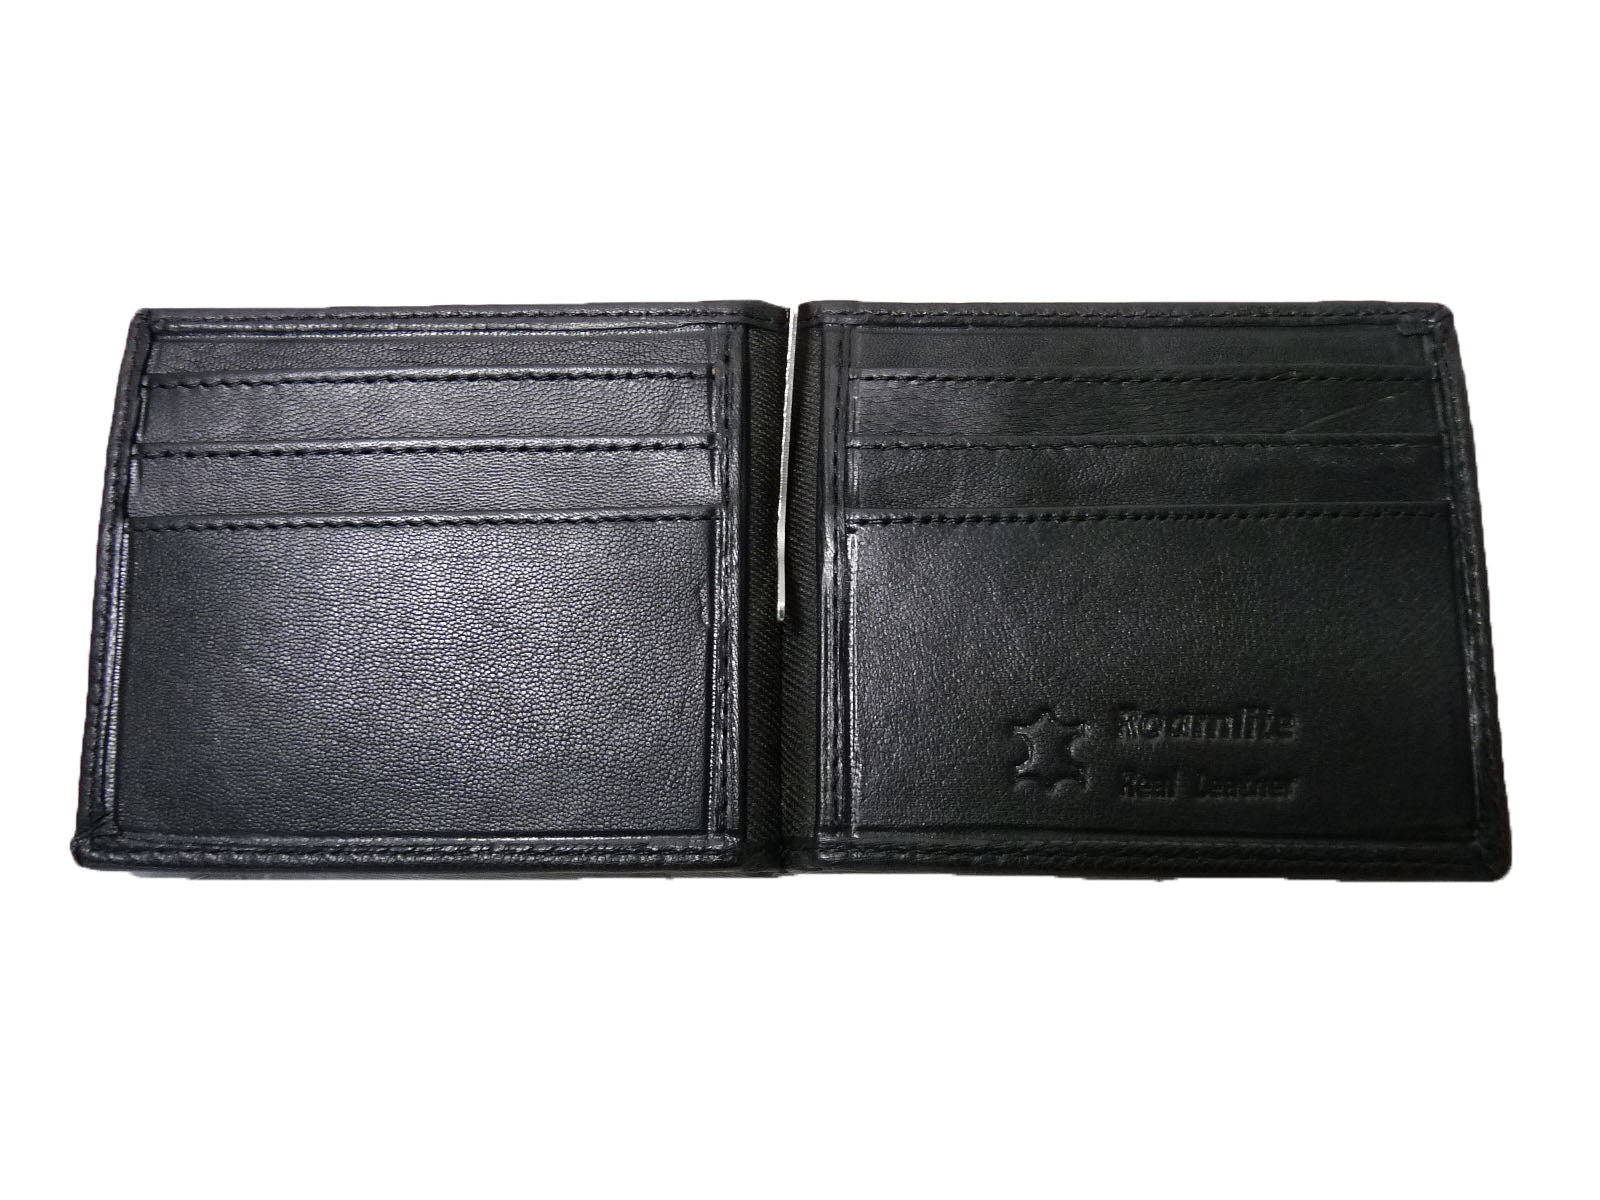 Leather Money Clip RFID Blocking Wallet RL192K open view2